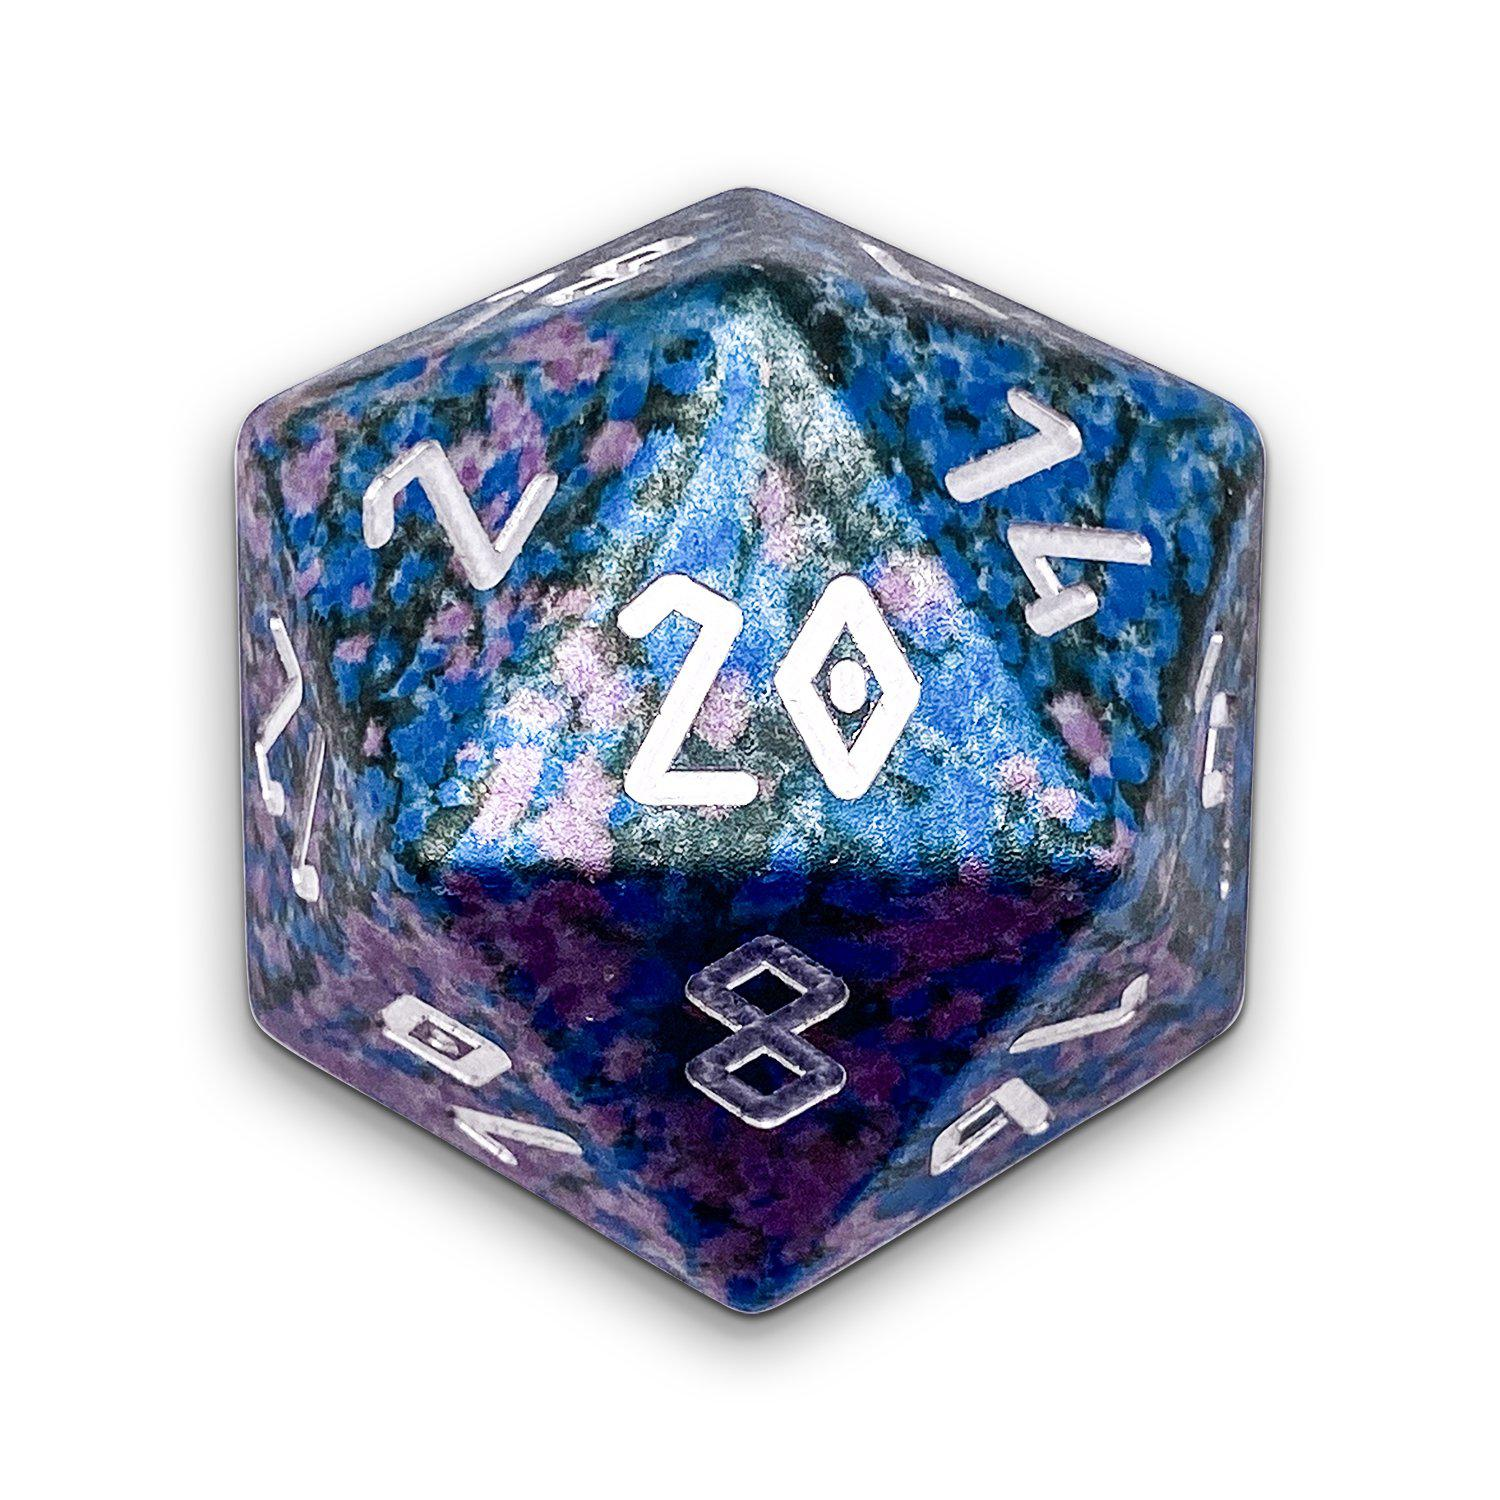 Enchanted Forest - Wondrous Boulder® 55mm D20 6063 Aircraft Grade Aluminum Metal Die